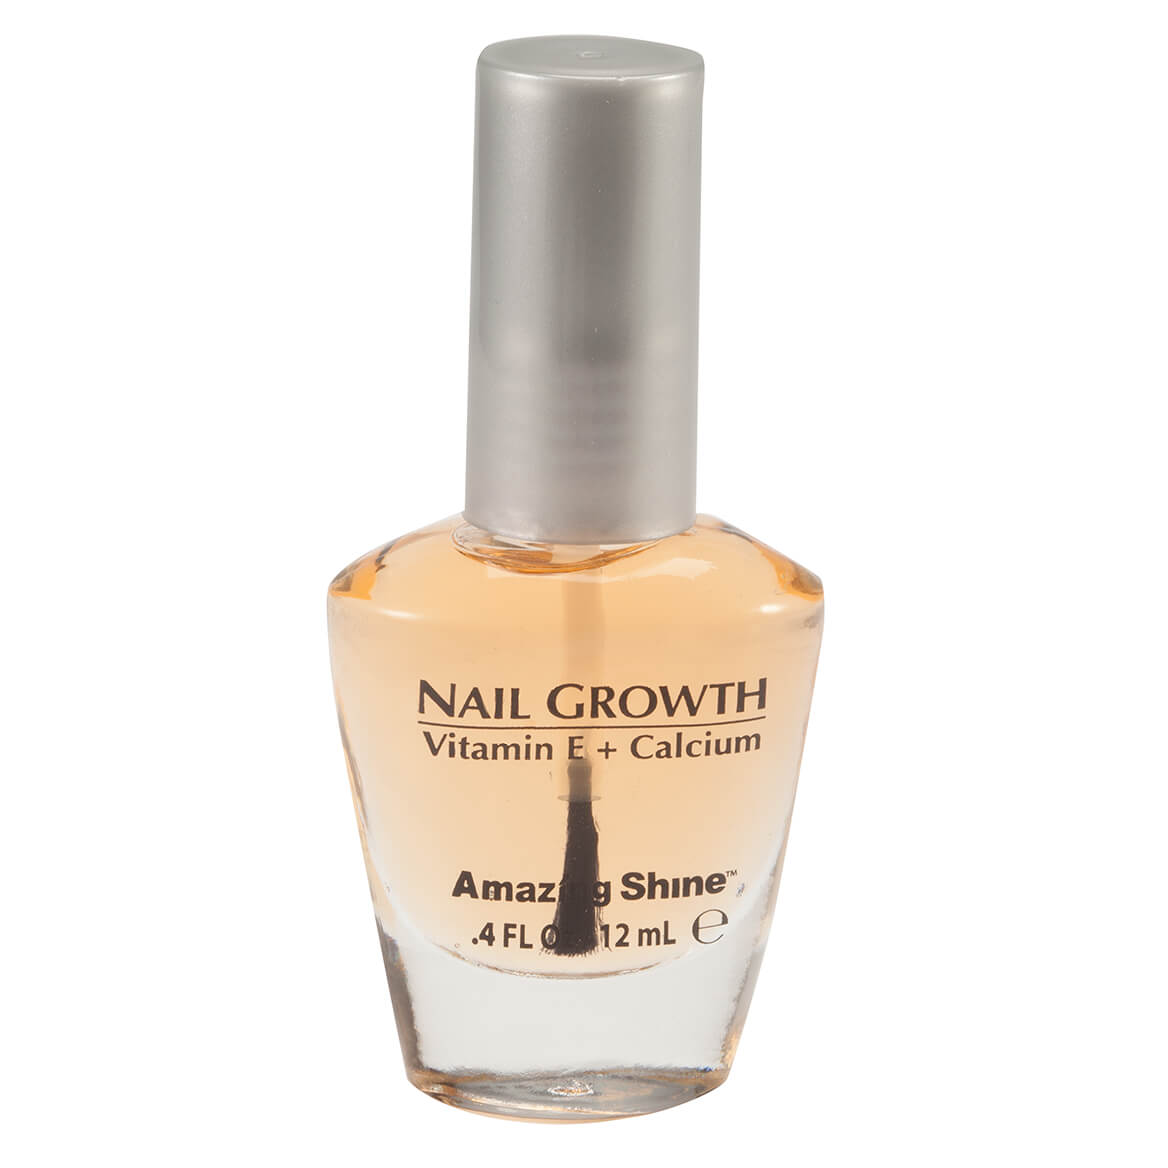 Nail Growth with Vitamin E + Calcium 811837013350 | eBay